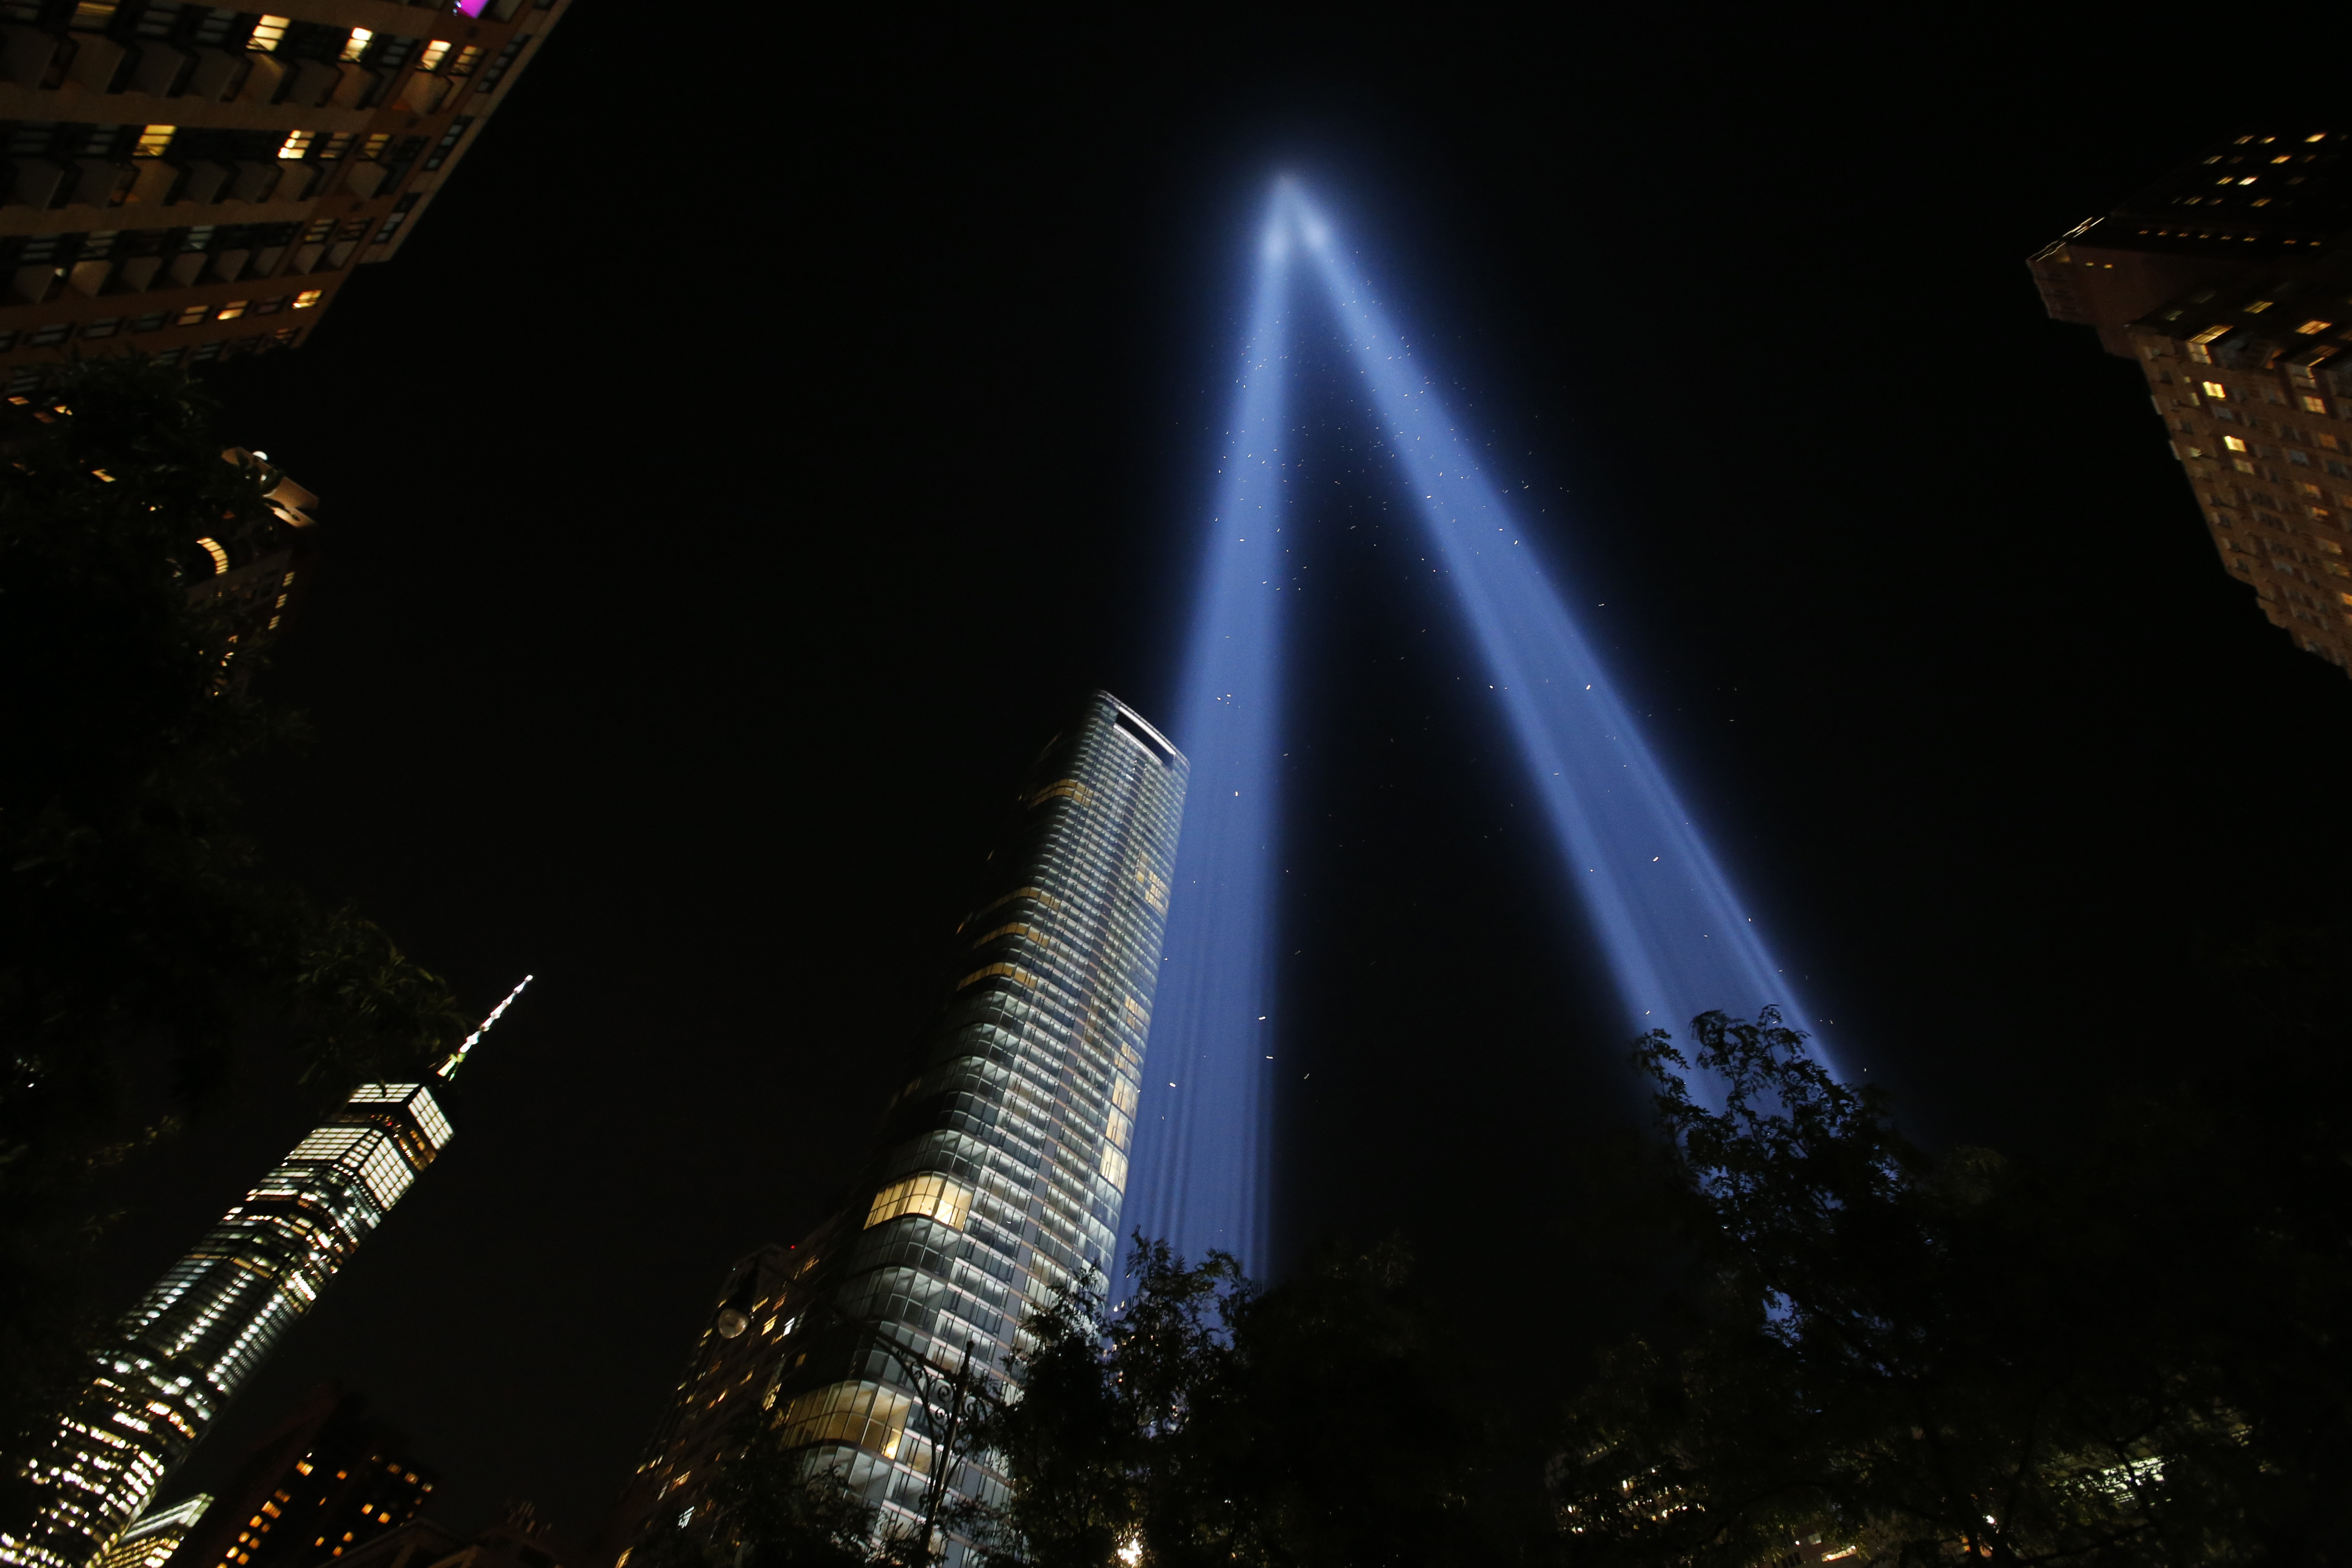 "<div class=""meta image-caption""><div class=""origin-logo origin-image none""><span>none</span></div><span class=""caption-text"">The Tribute in Light is seen in the sky above Lower Manhattan on the 16th anniversary of the Sept. 11 terror attacks, Monday, Sept. 11, 2017, in New York. (AP Photo/Jason DeCrow)</span></div>"